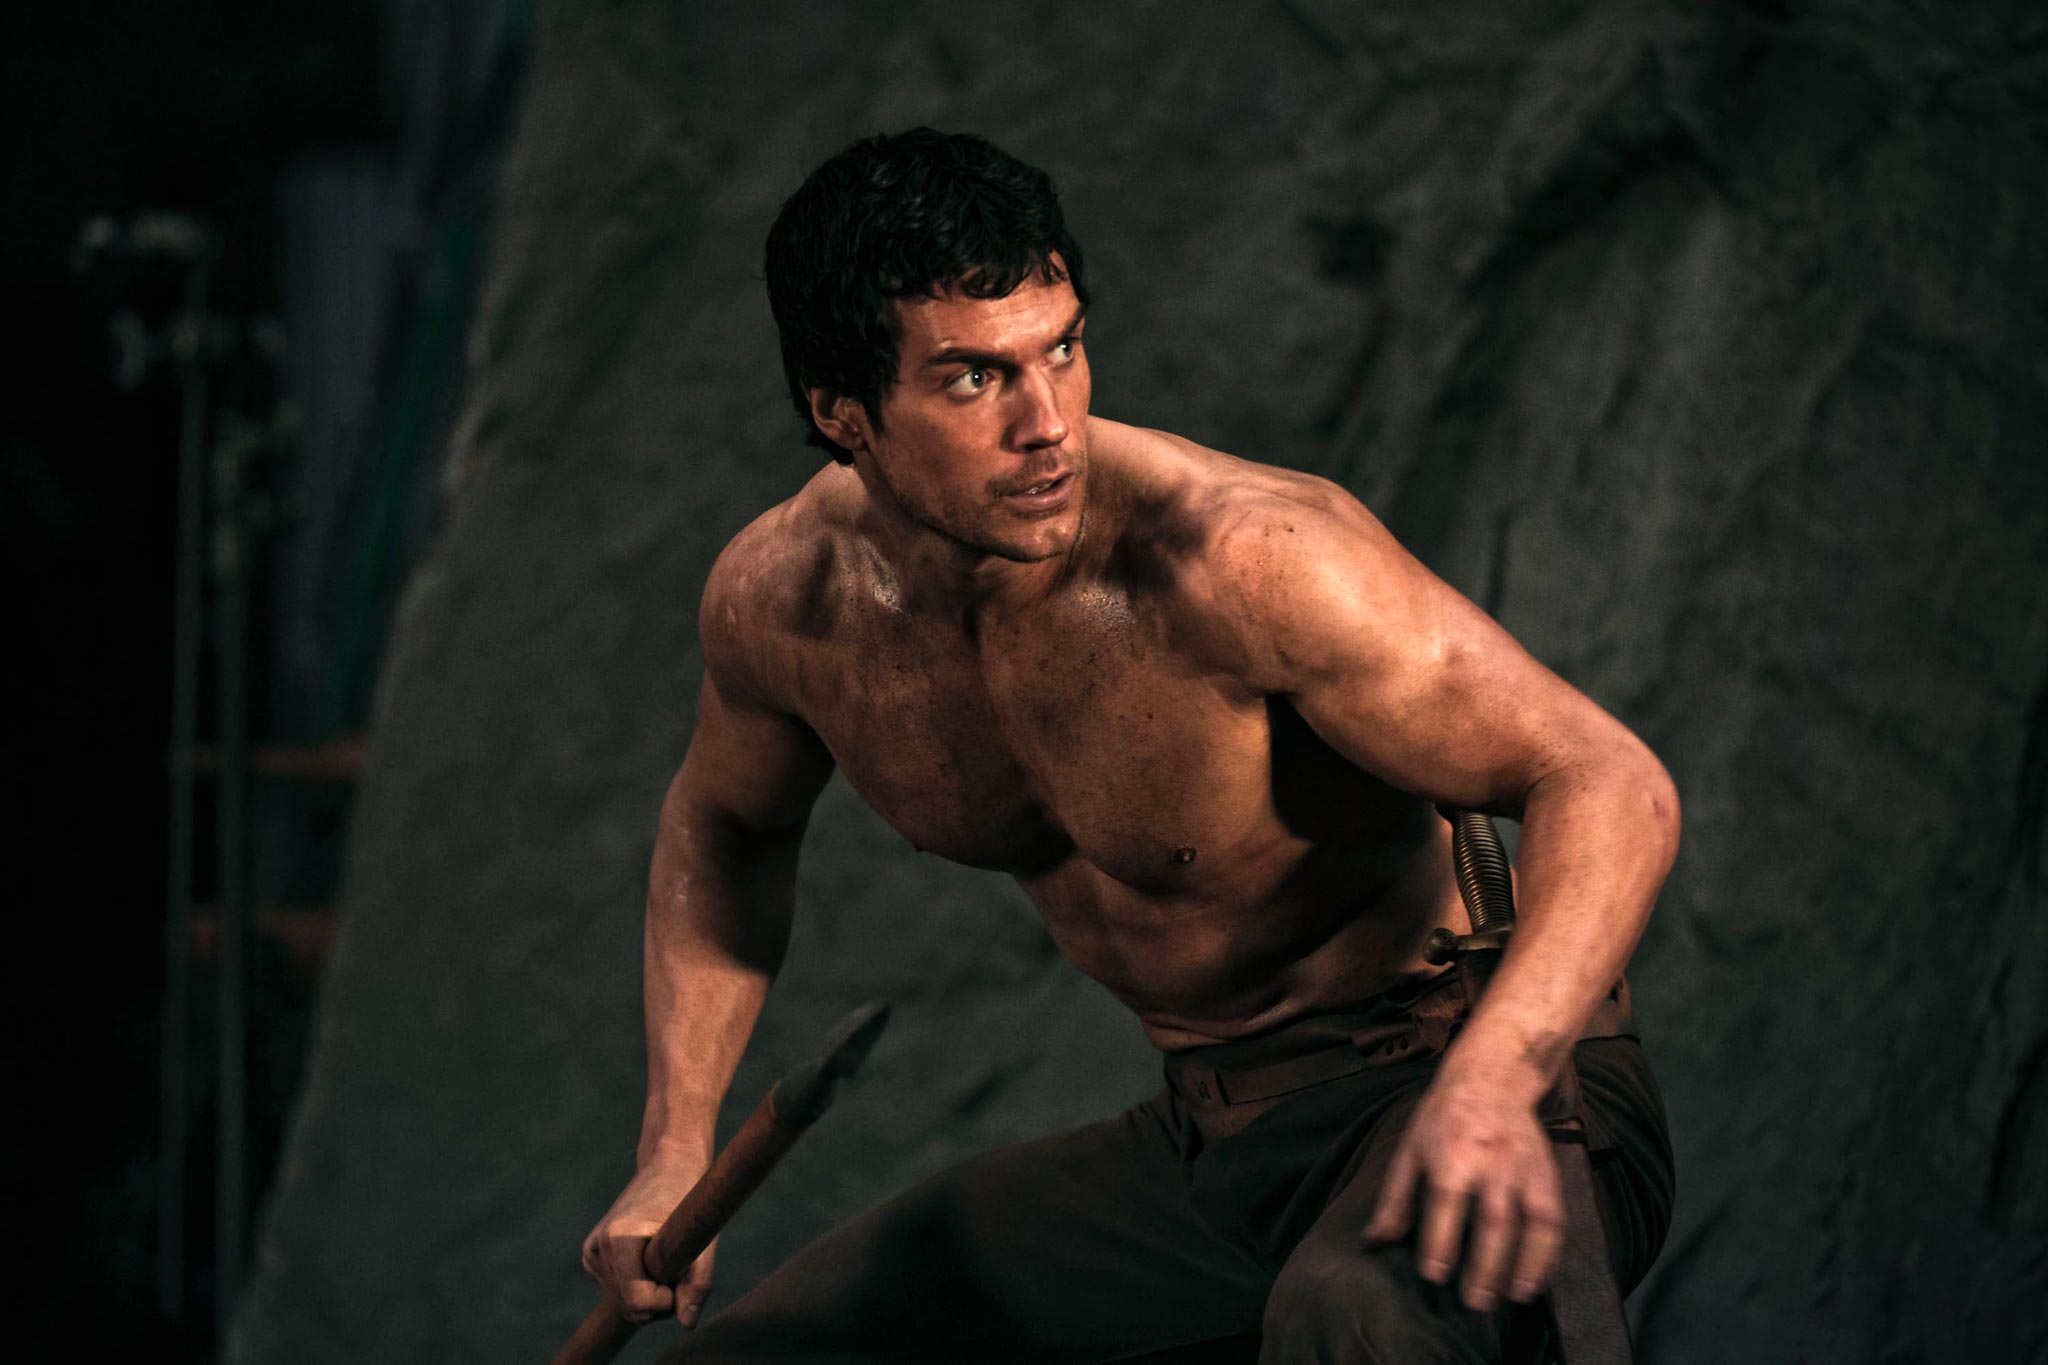 shirtless henry cavill as theseus in immortals movie